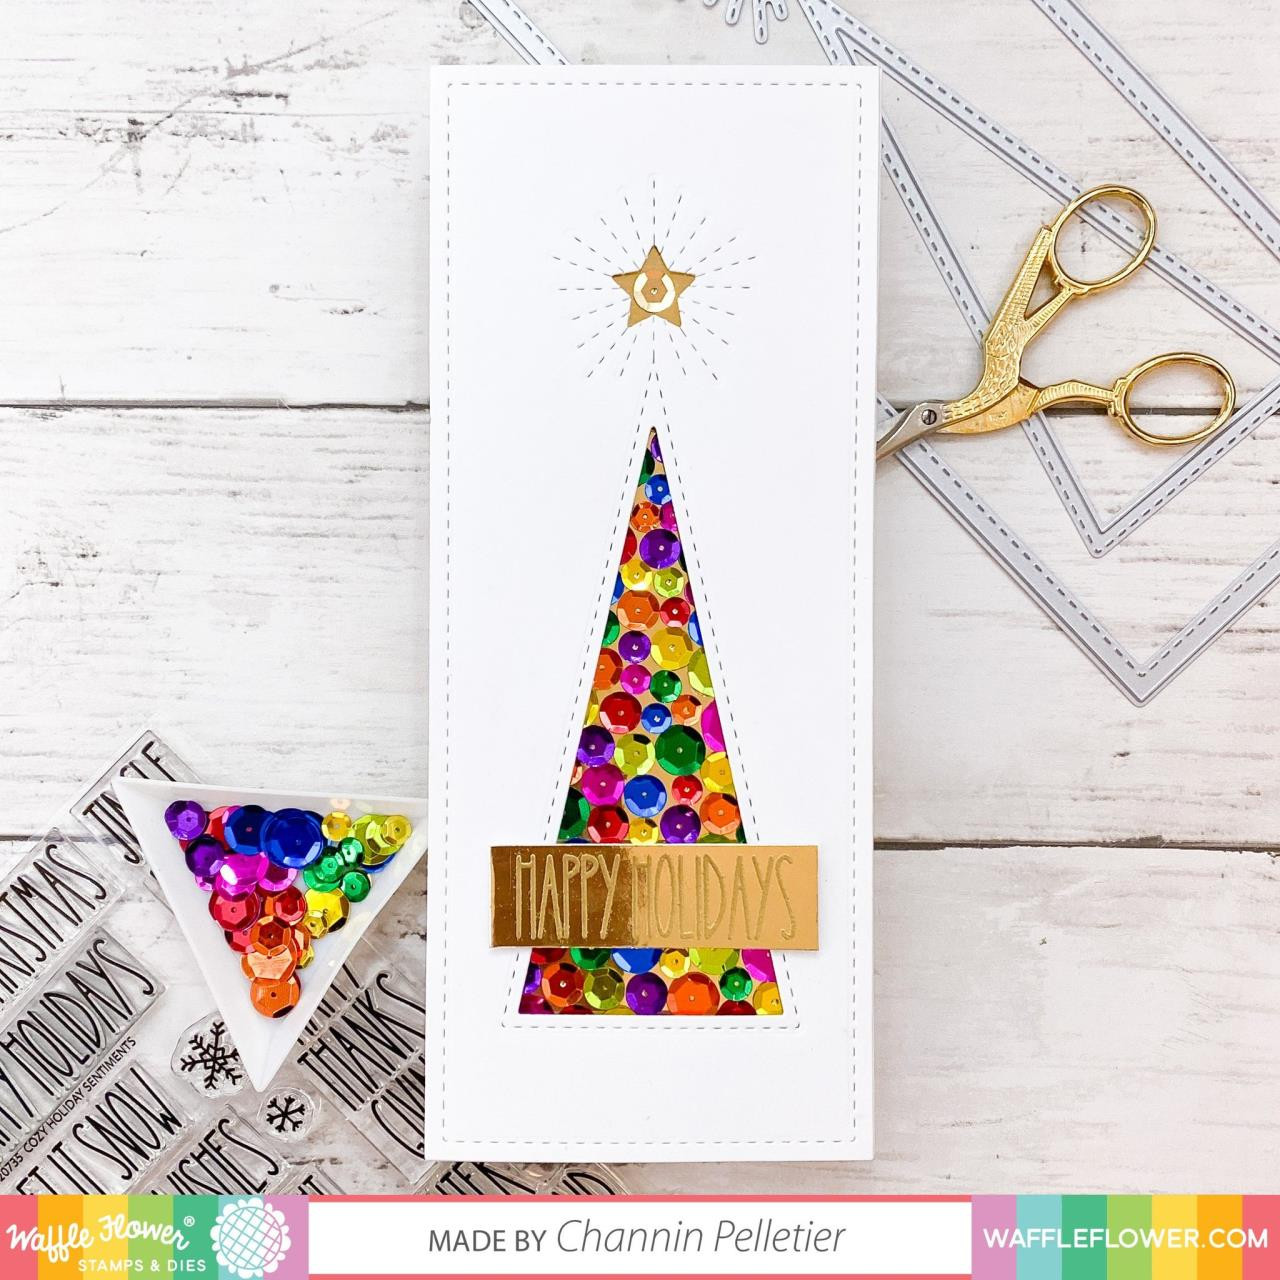 Cozy Holiday Sentiments, Waffle Flower Clear Stamps -